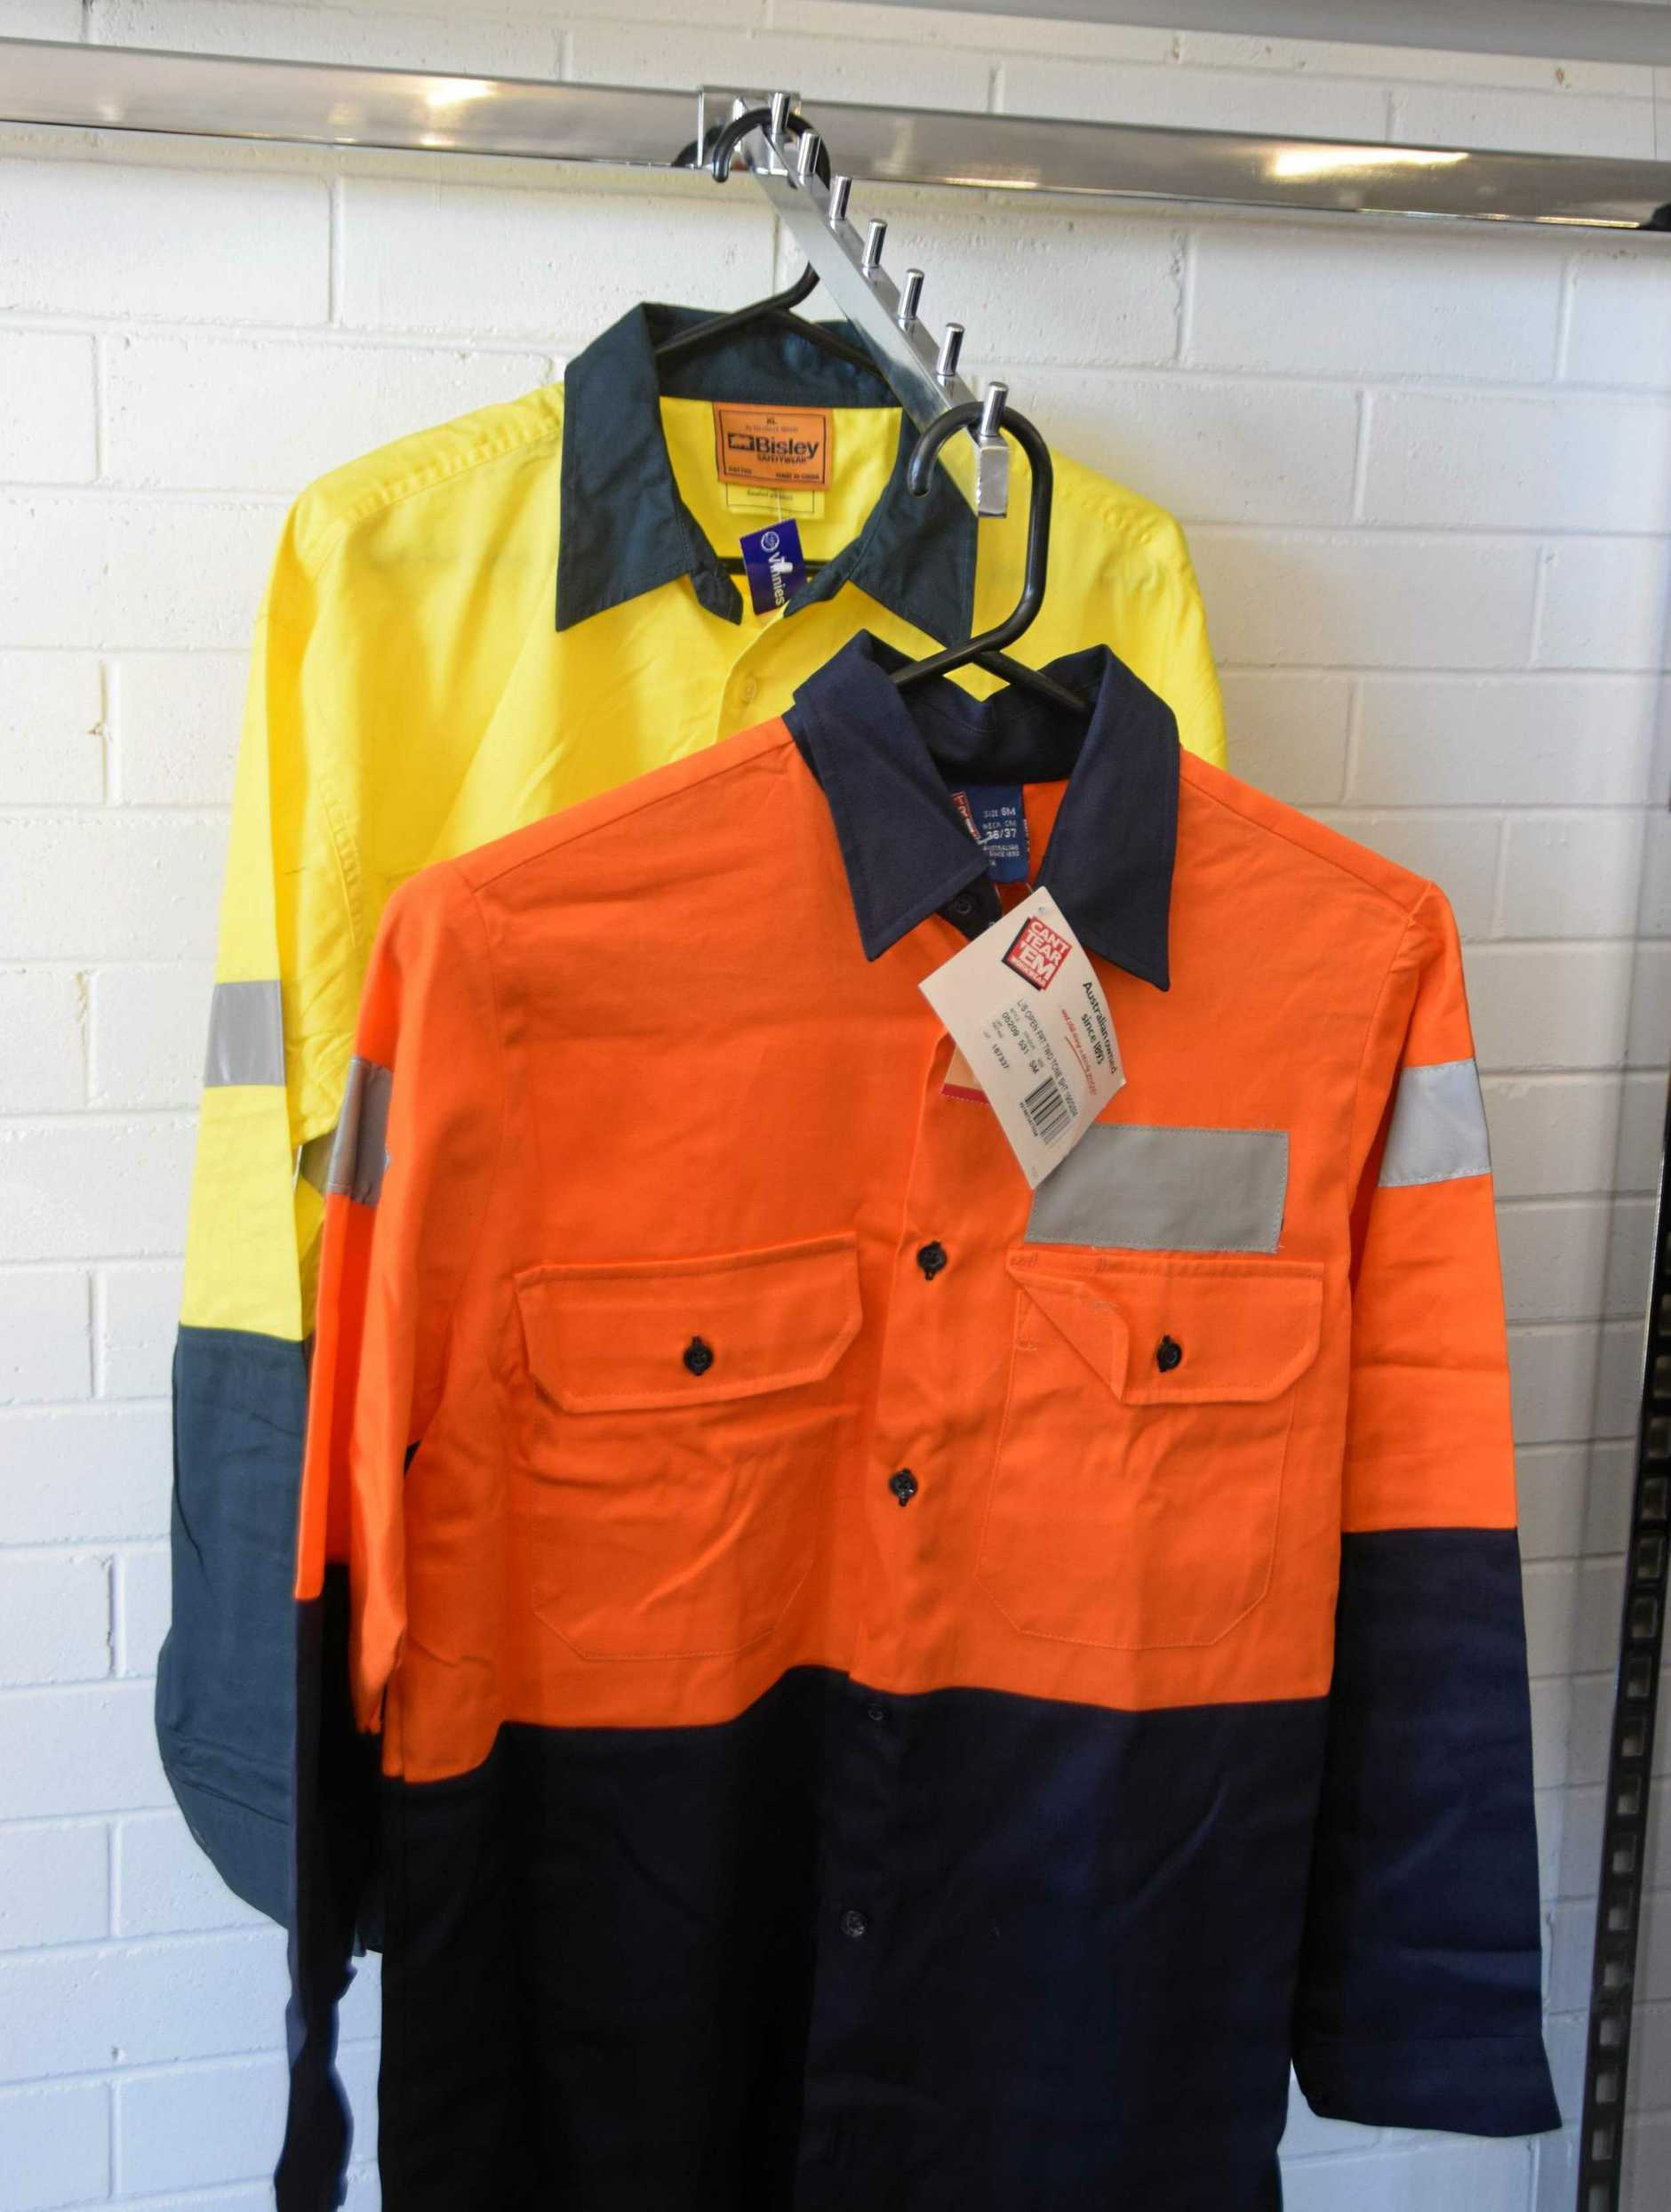 Vinnies men's work shirts yellow Bisley Safety Wear size XL $10, orange Can't Tear 'Em size SM $10